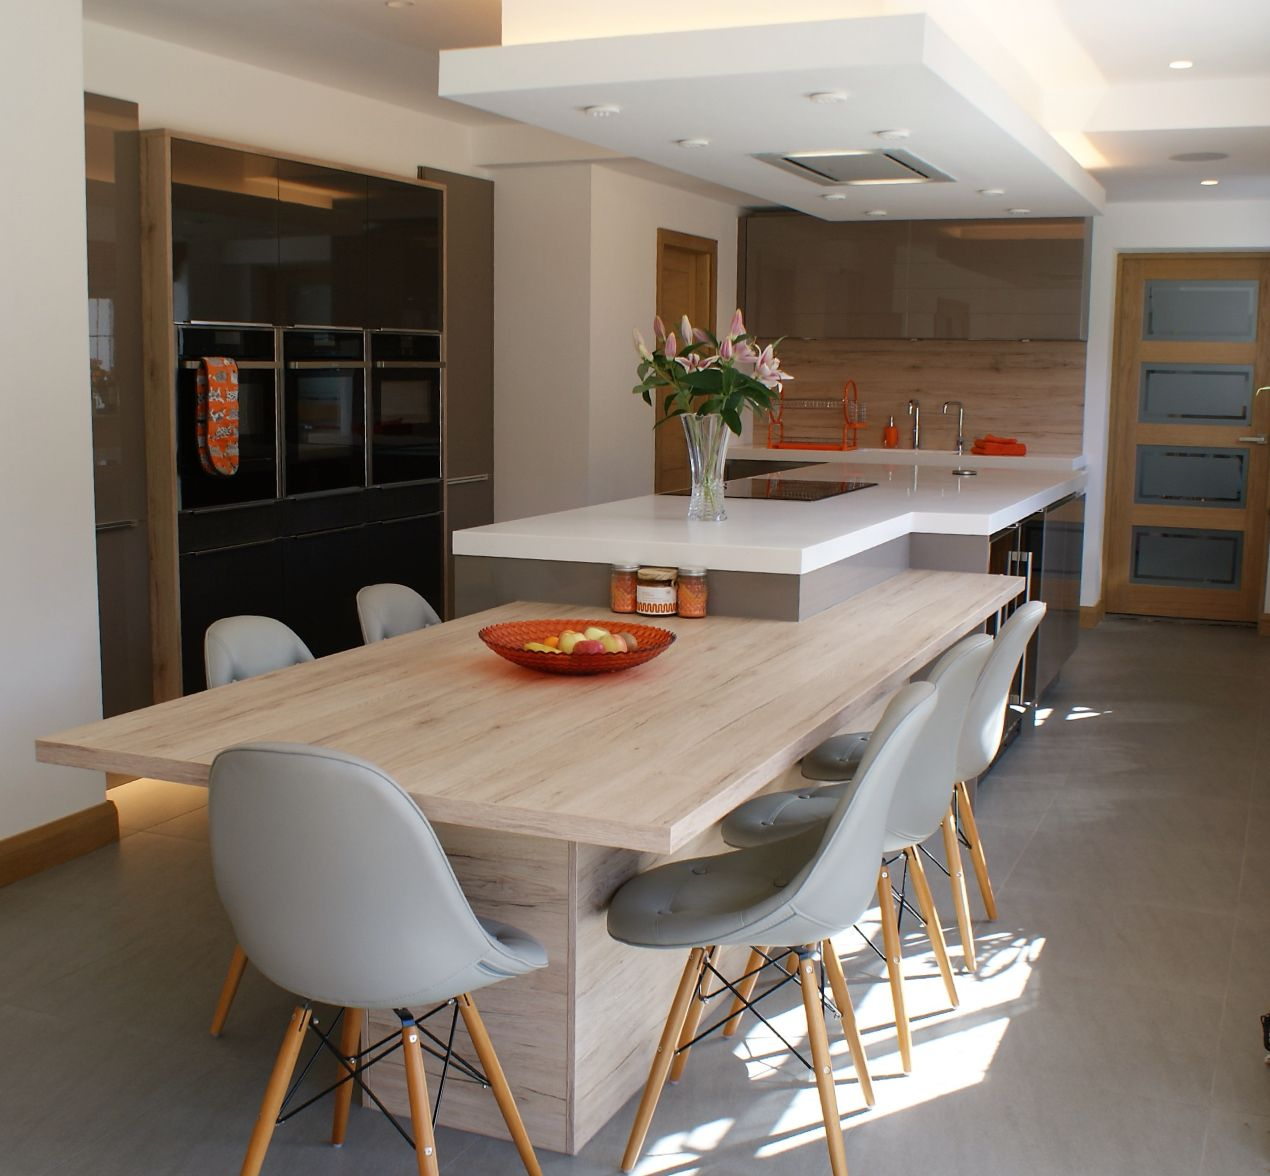 Kitchen Design Centre Hollinwood Ultimate Designer Kitchen In Colne Case Study Kitchen